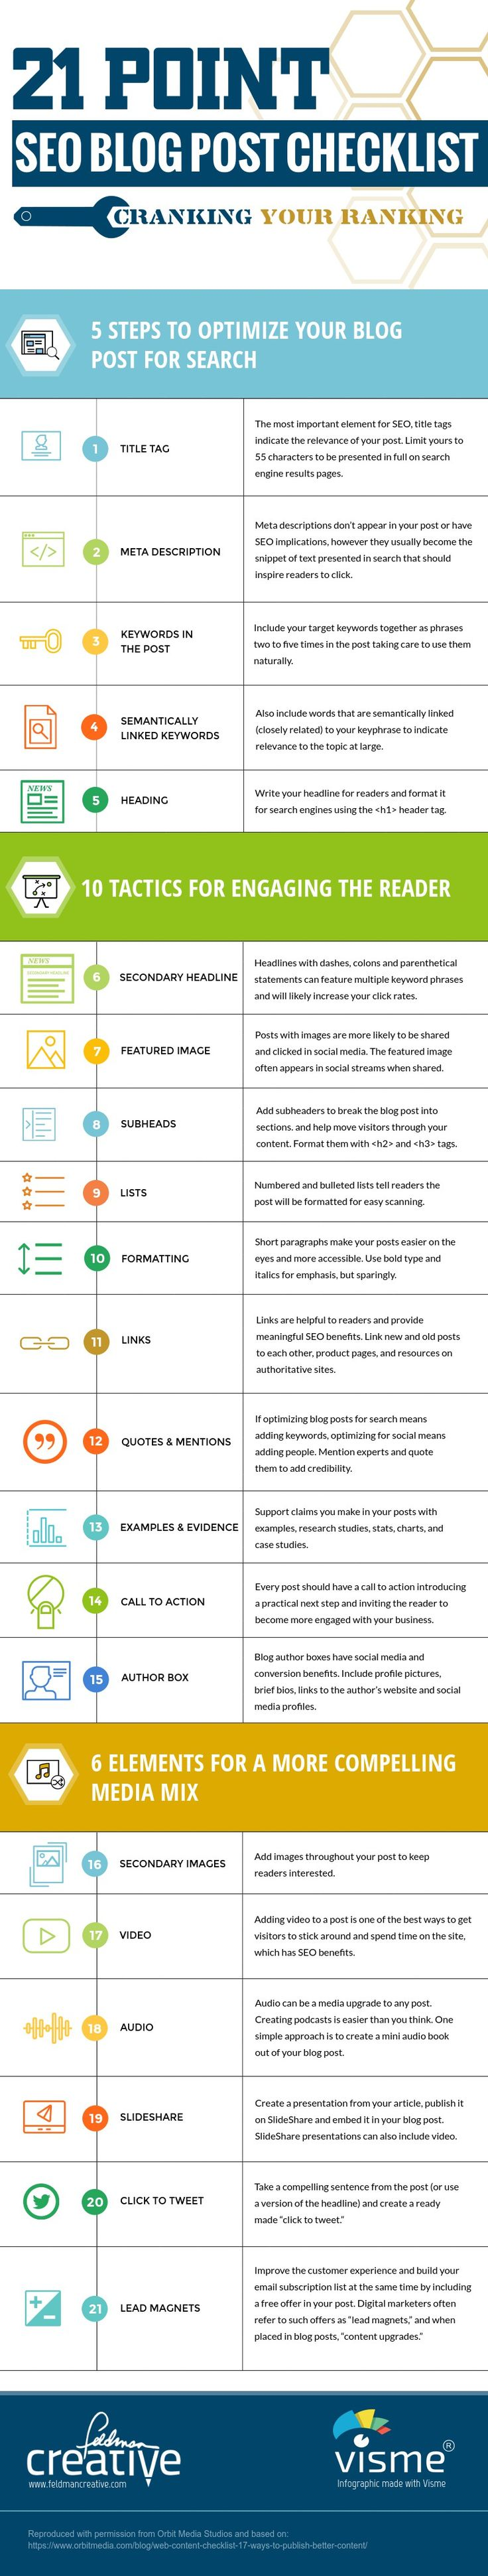 Optimizing Web Content for Search | Infographic by @FeldmanCreative | Barry Feldman for Content Marketing Institute | #BloggingTips #SEO #ContentMarketing | 21 POINT SEO BLOG POST CHECKLIST